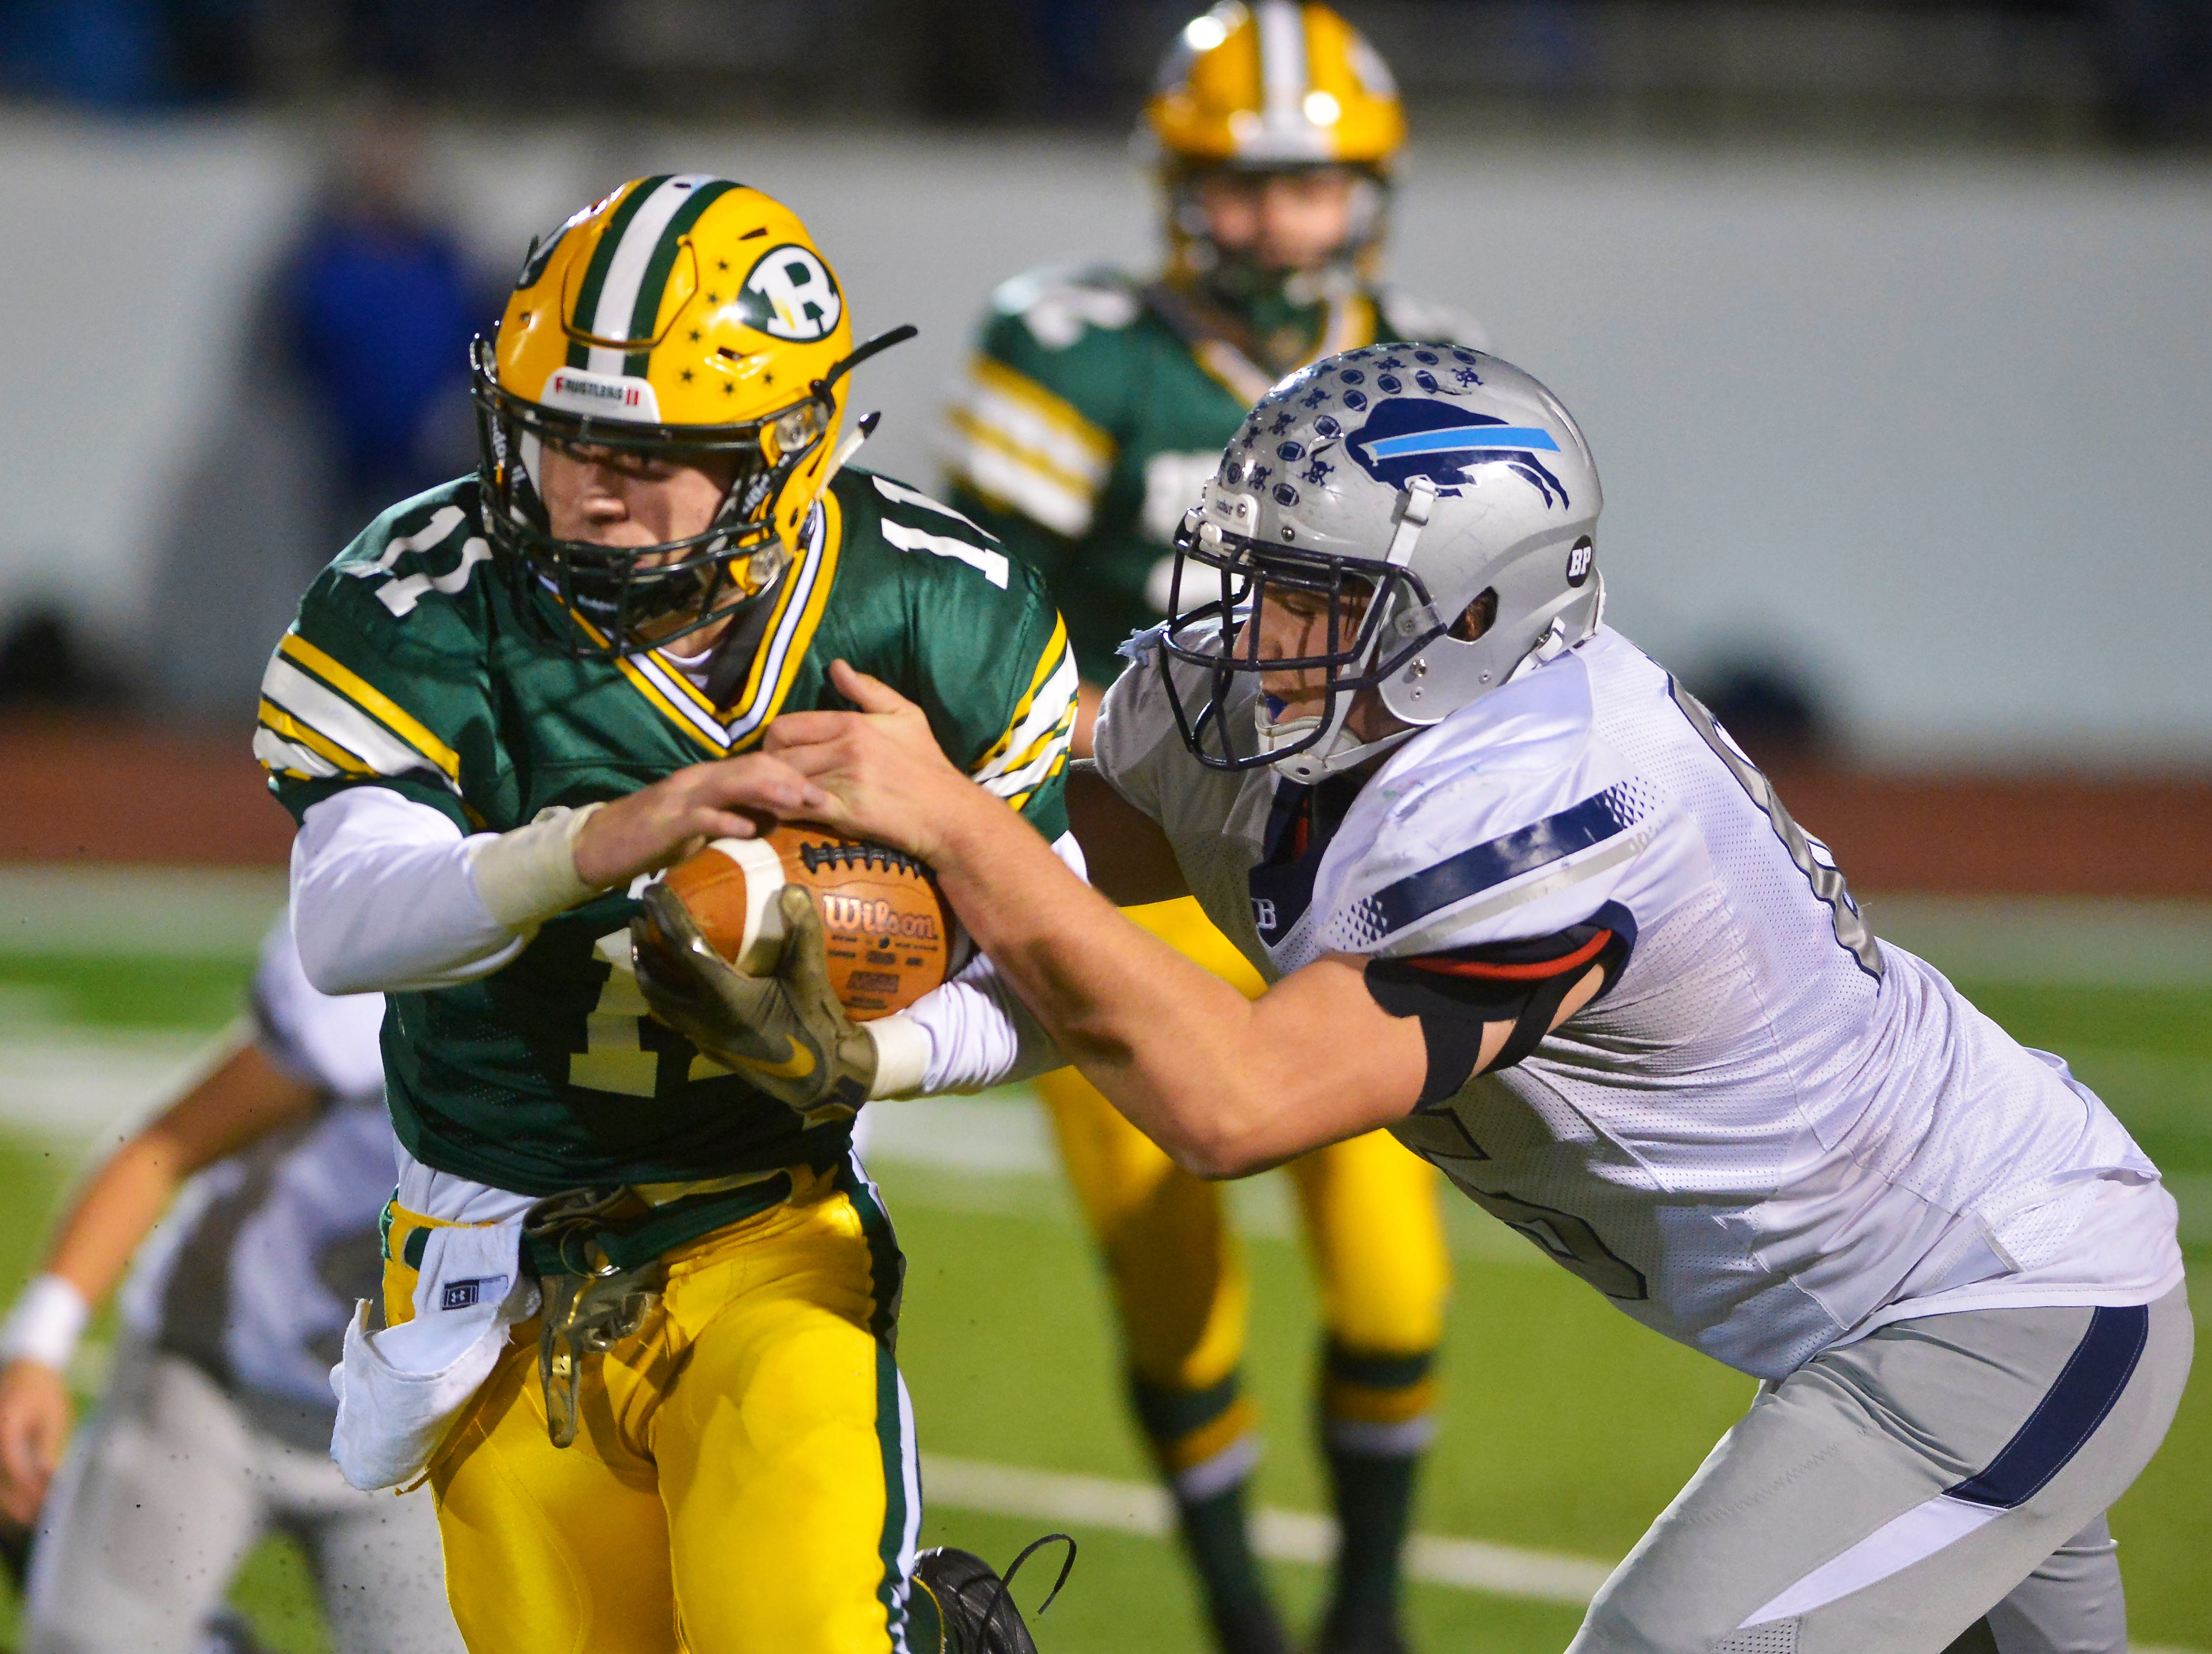 Great Falls High's Sam Potoczny attempts to bring down CMR's Bryce Nelson during the crosstown football game on Friday night at Memorial Stadium.